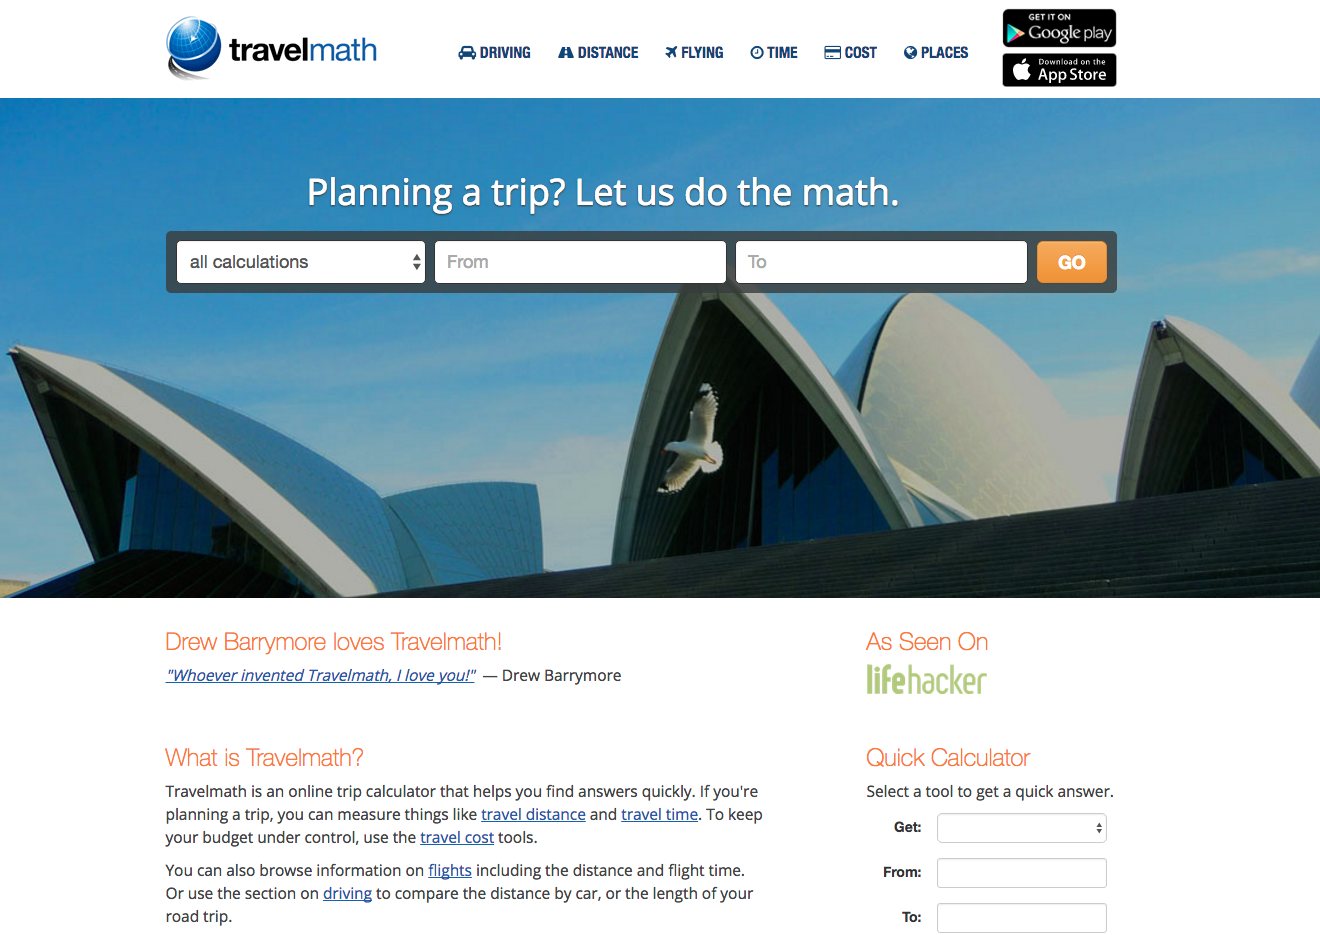 travelmath screenshot - front page